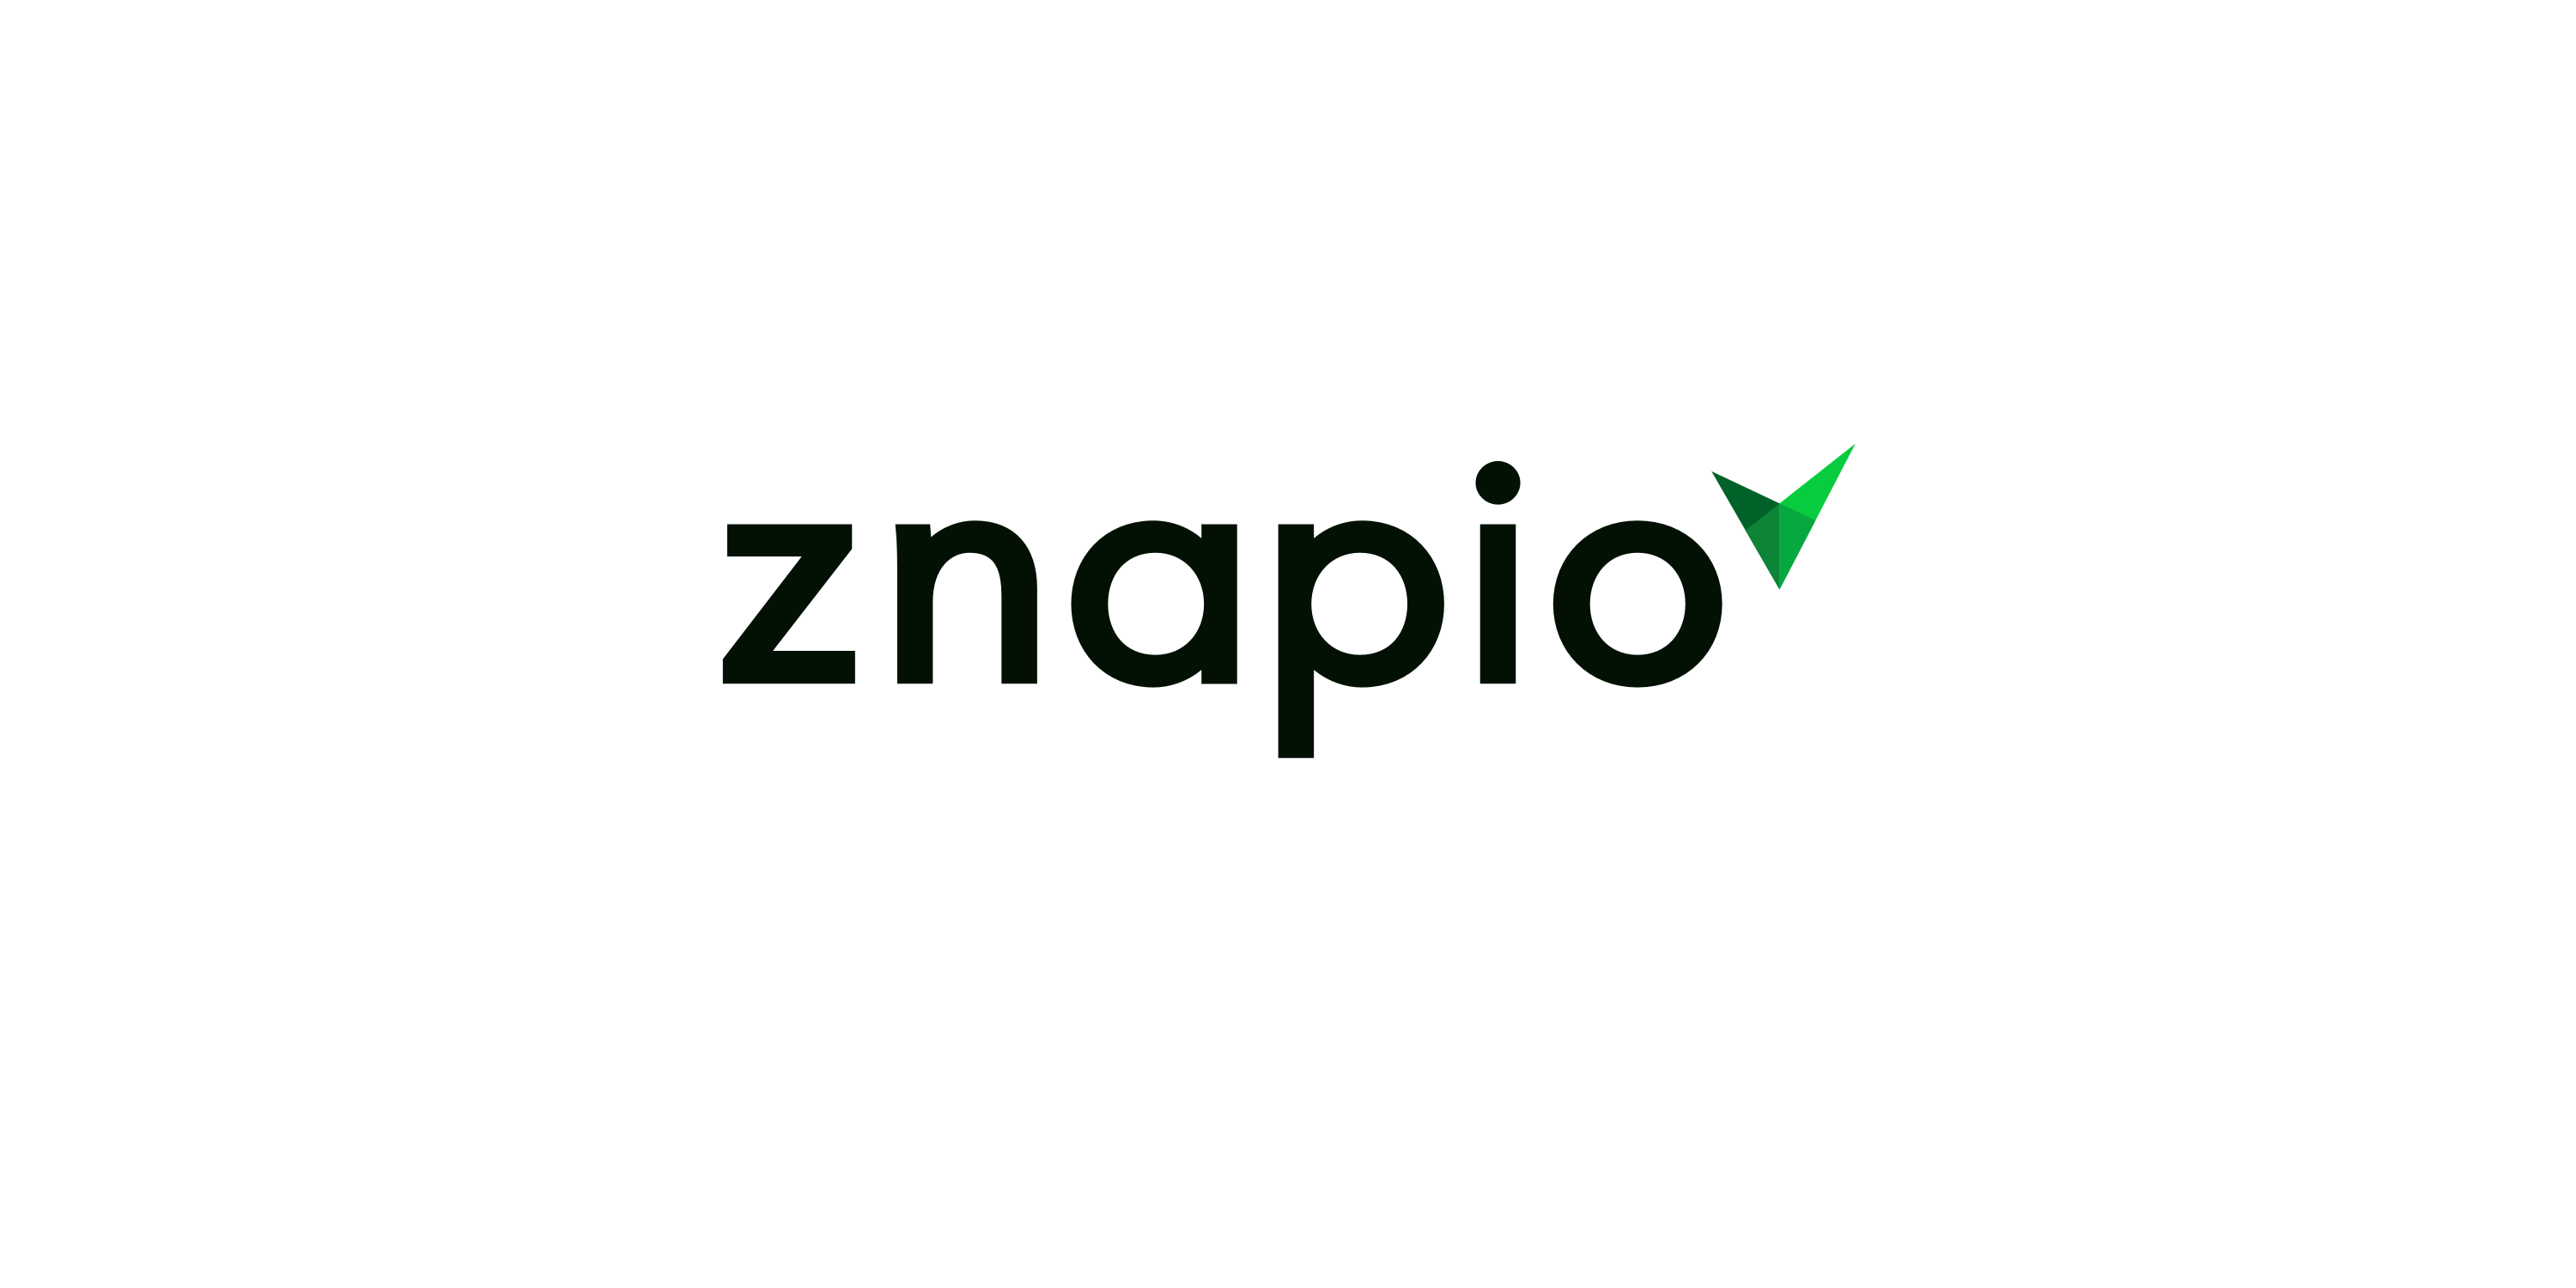 Design a clean and modern logo for our Znapio software